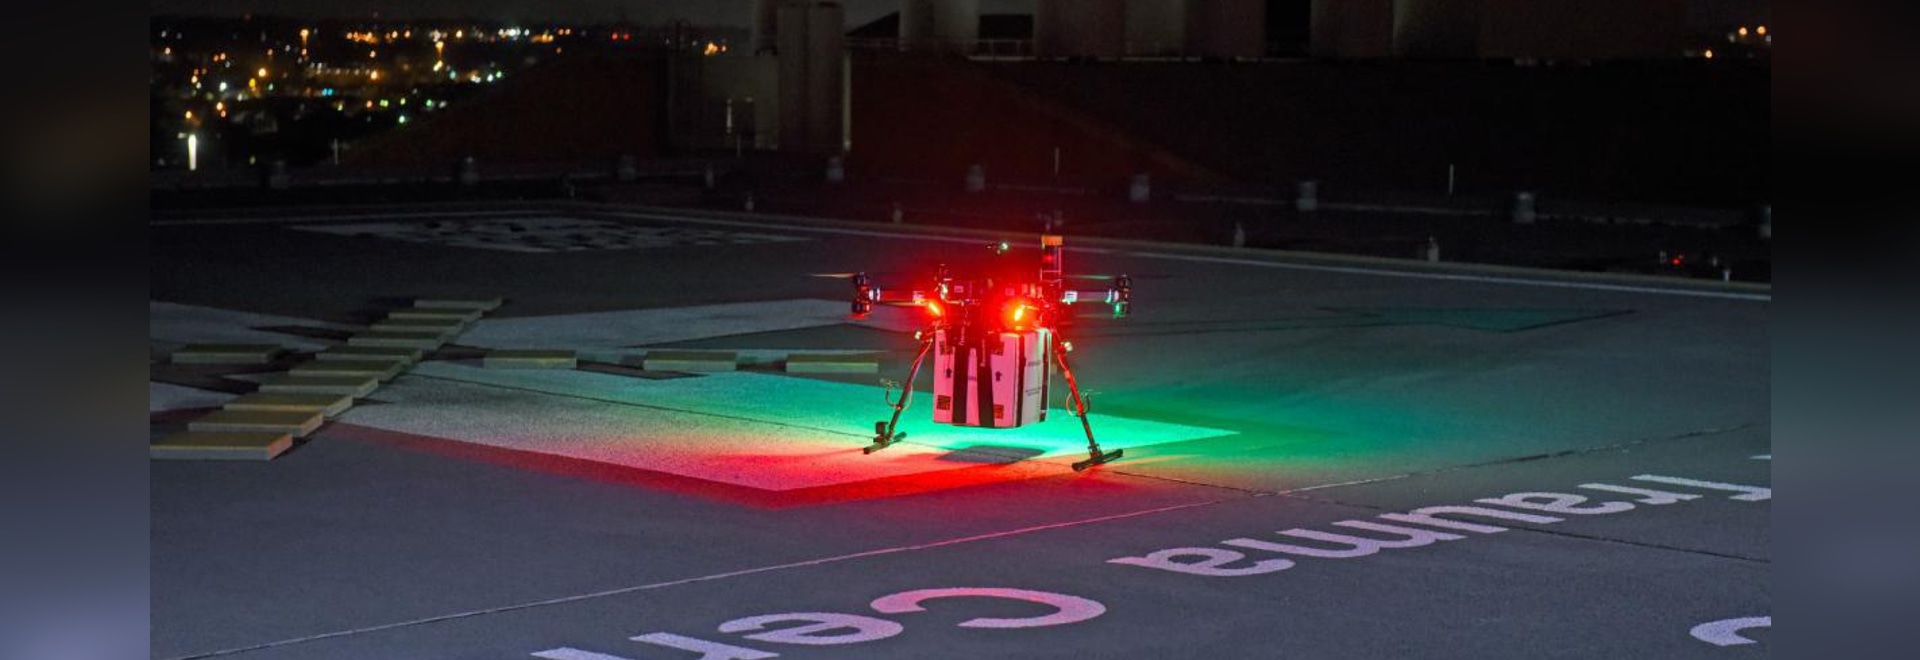 Drone delivers transplant organ in world first